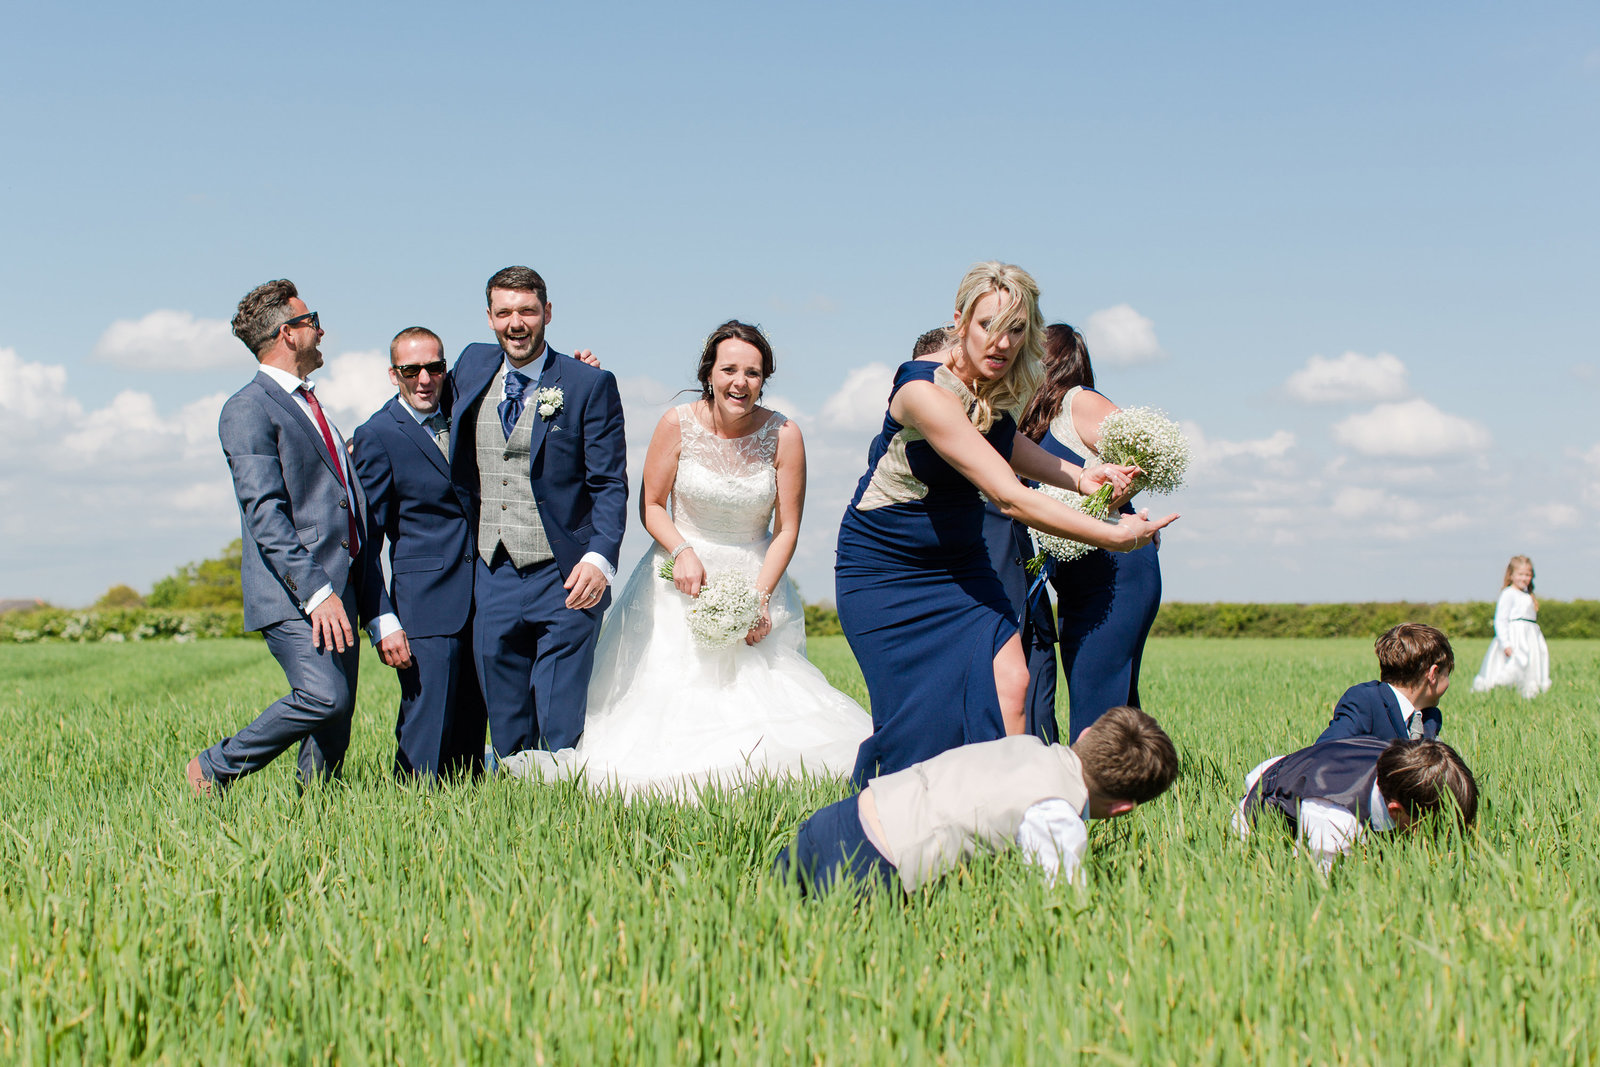 adorlee-0136-southend-barns-wedding-photographer-chichester-west-sussex